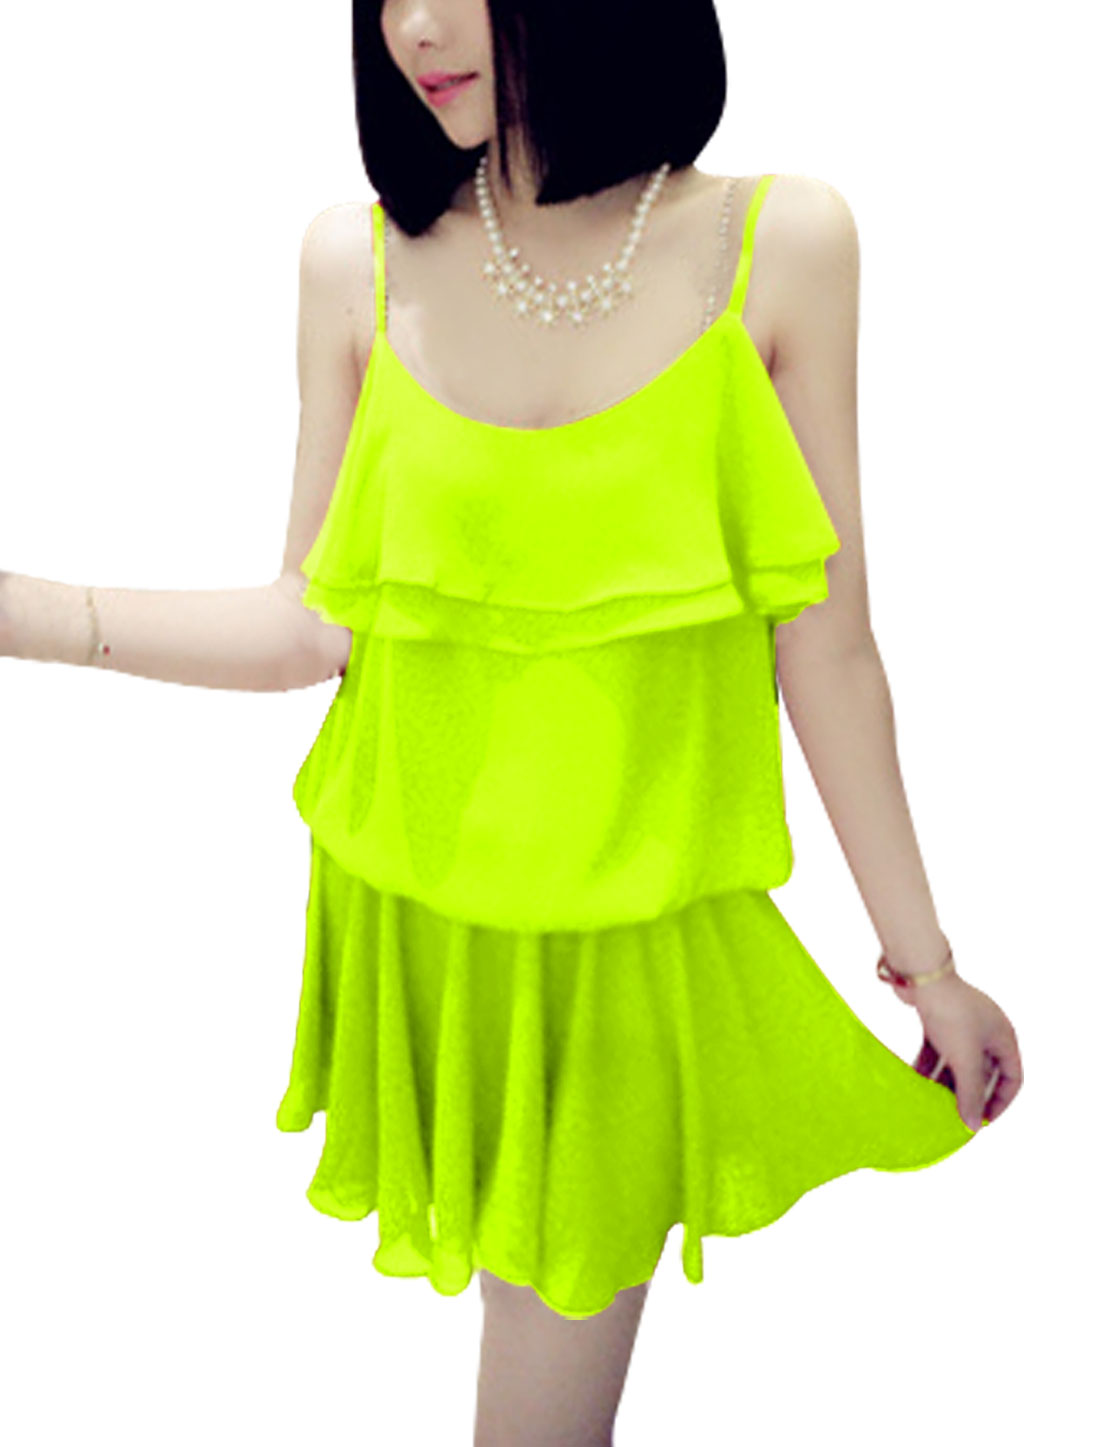 Lady Scoop Neck Spaghetti Strap Dress Yellow Green S